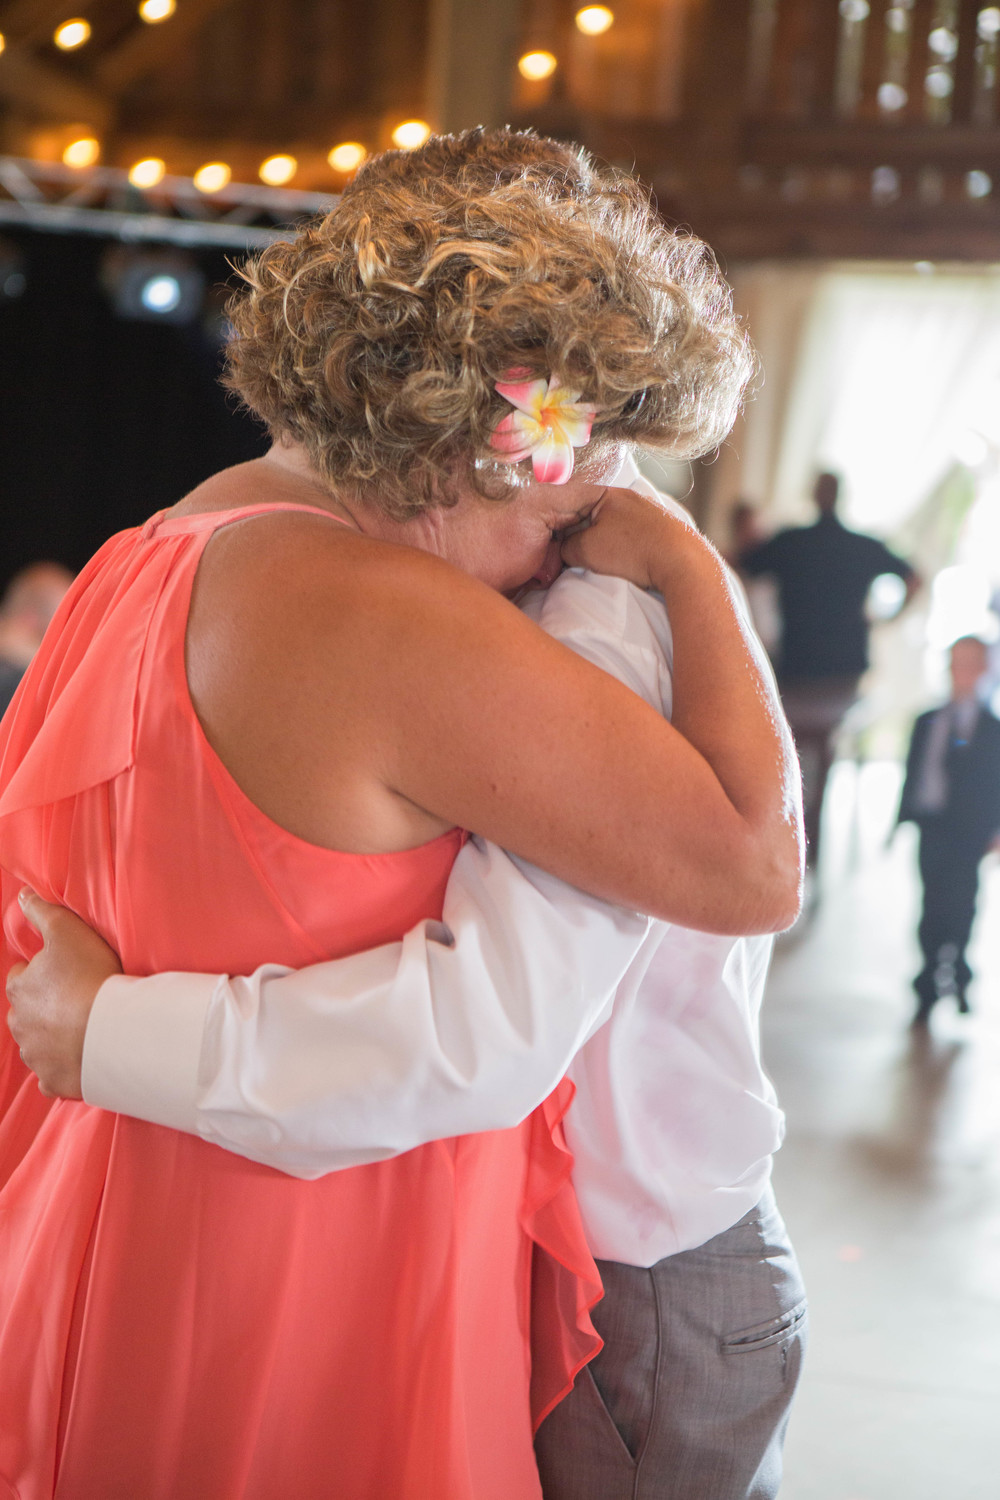 This Mother-Son dance had me in tears! So much love!!